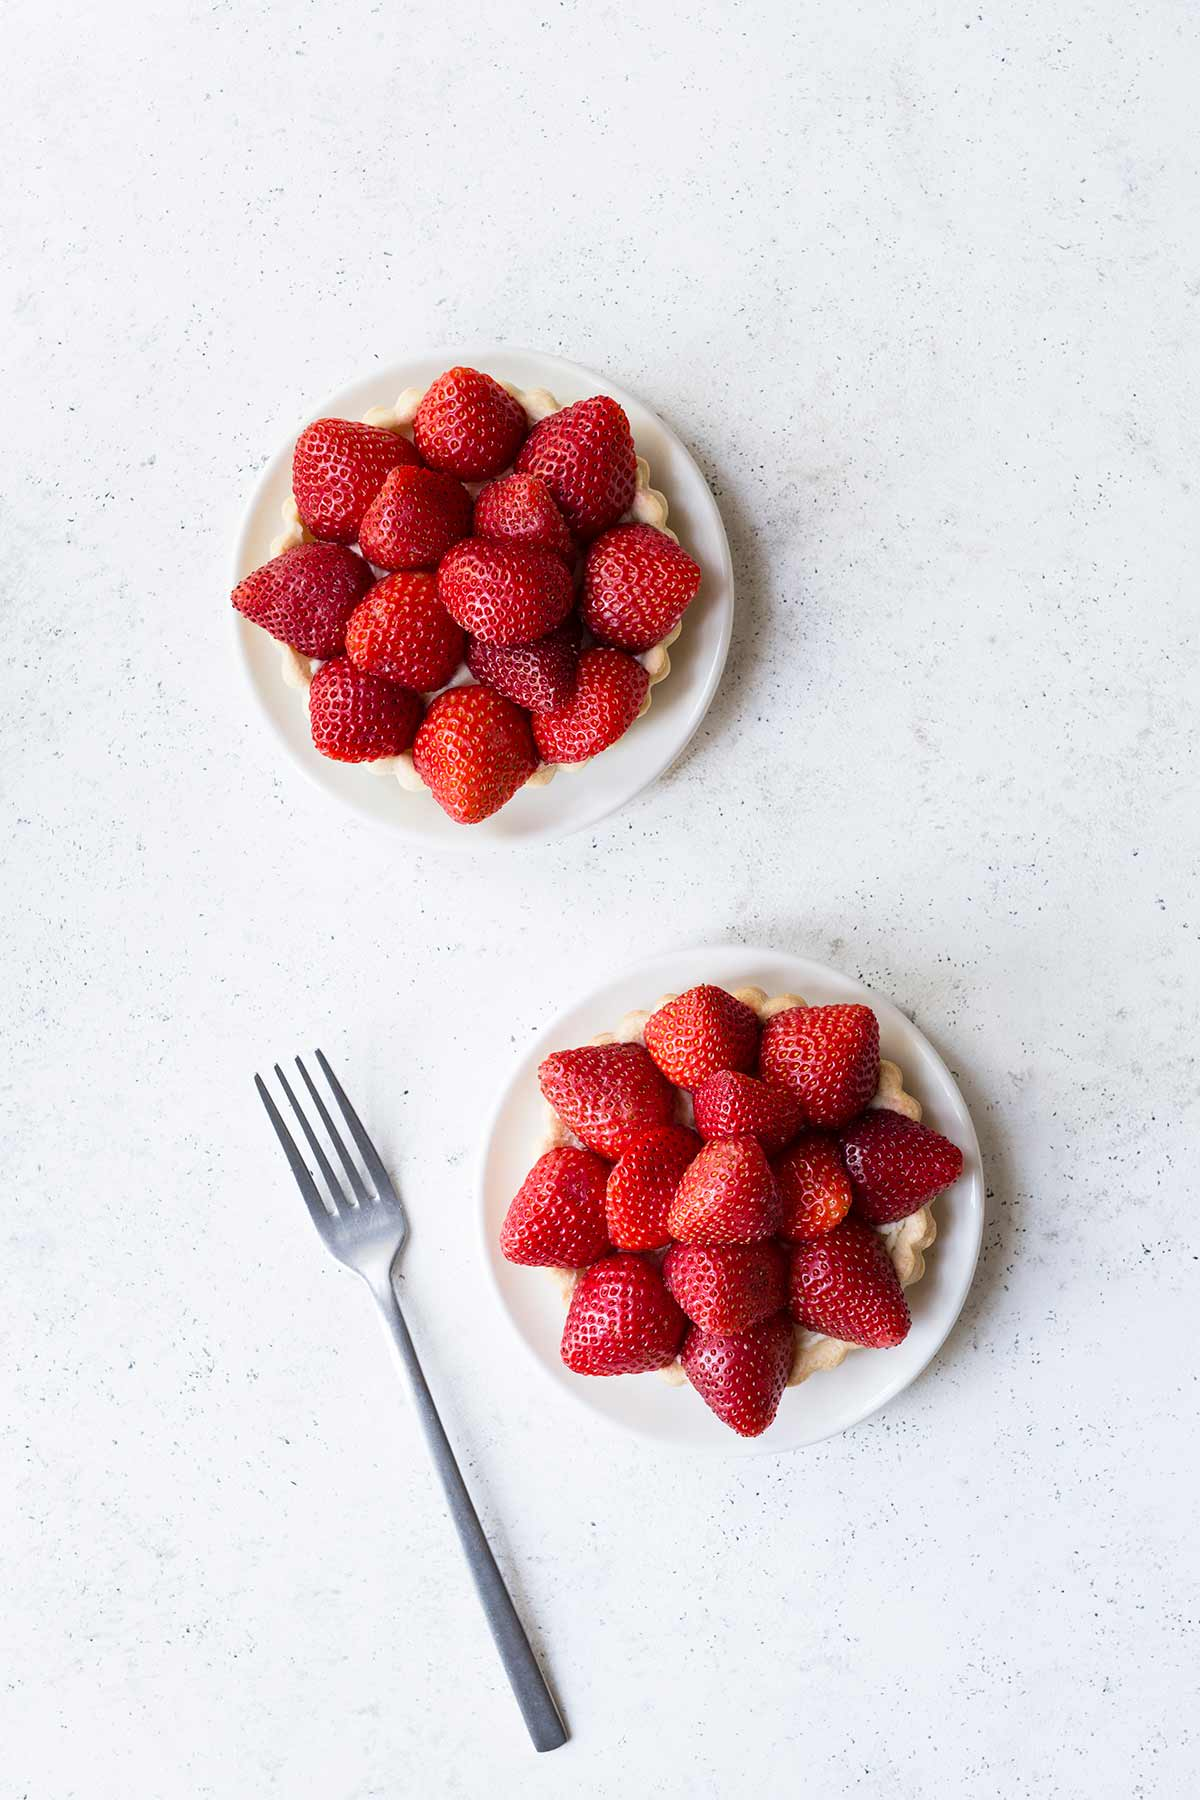 Two strawberry tarts on white plates on a pale backdrop.